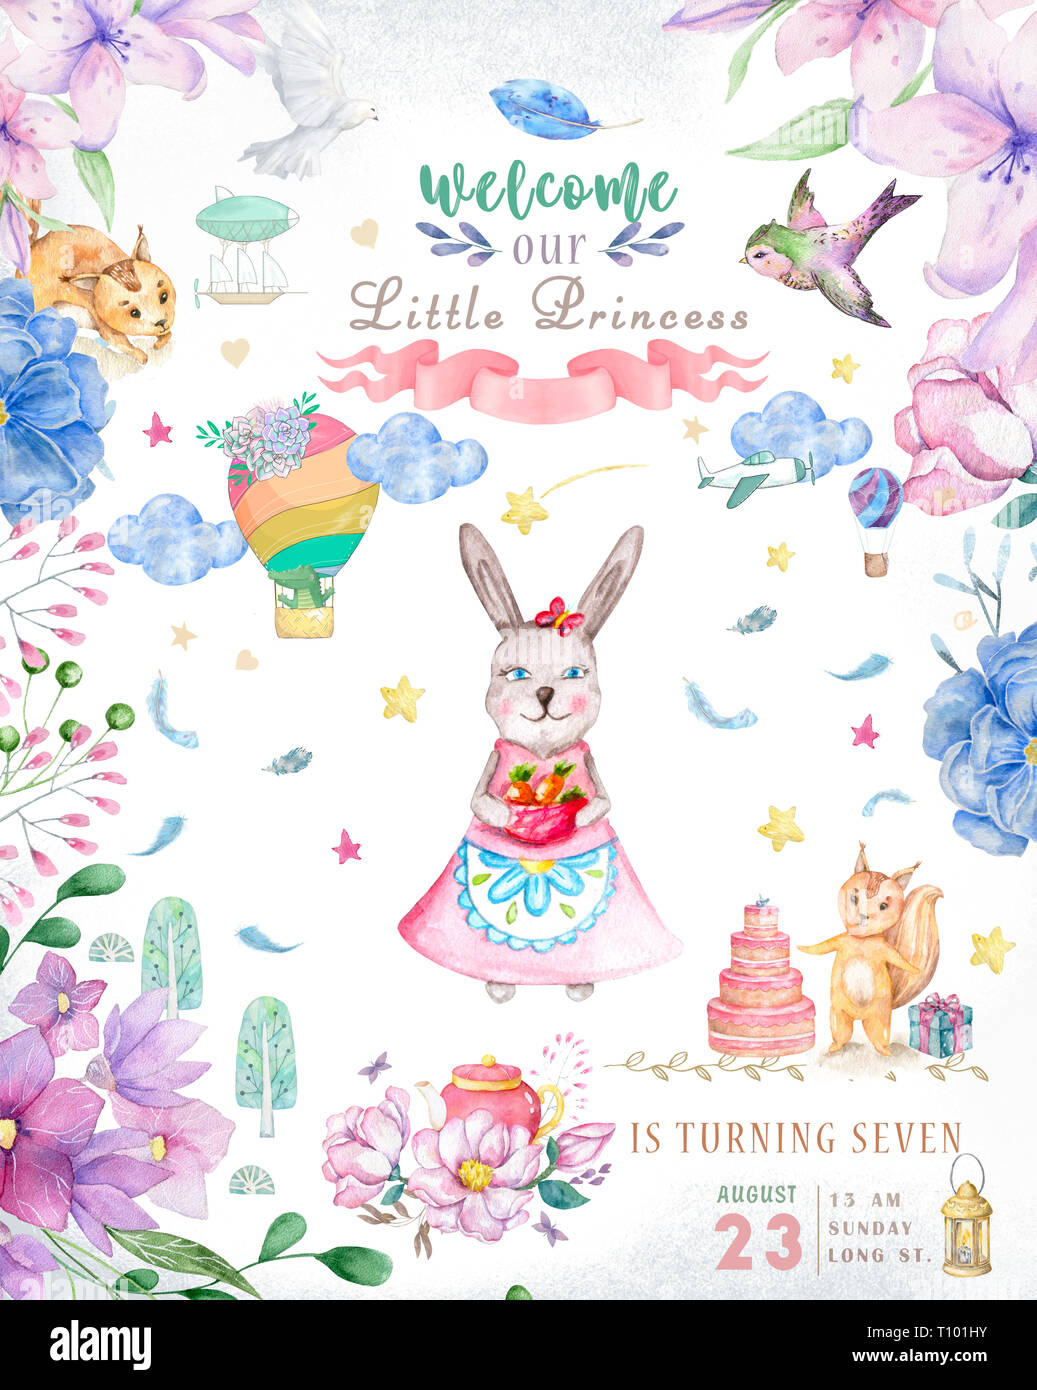 Cute Happy Birthday Card With Cartoon Bunny Watercolor Rabbit Clip Art And Beauty Boho Pink Flowers Floral Lamp Light And Leaf For Happy Easter On Stock Photo Alamy